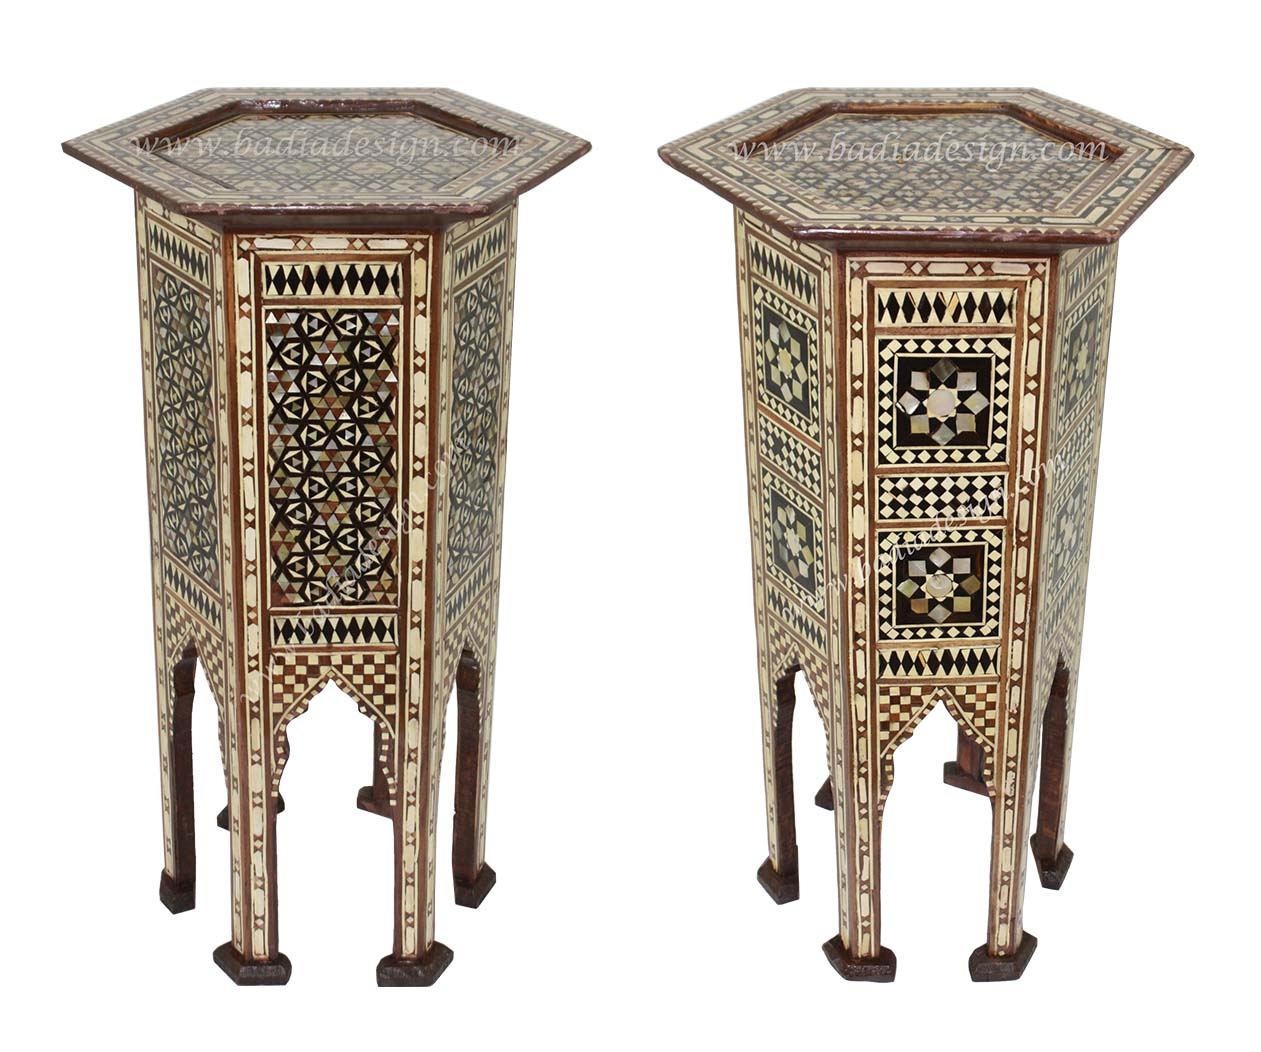 syrian-design-inlay-side-table-mop-st074.jpg